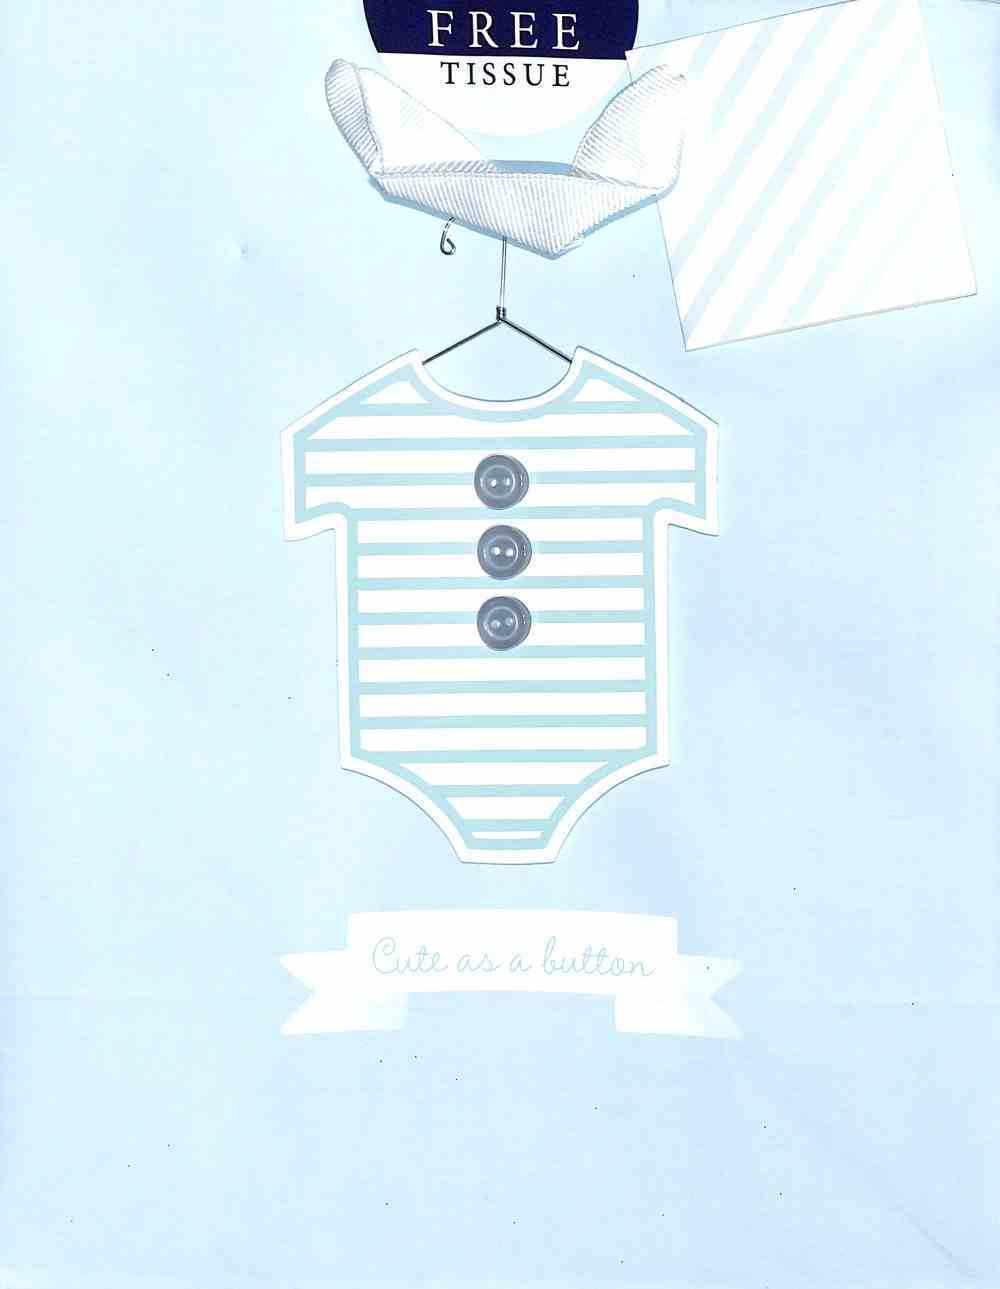 Gift Bag Medium: Baby Blue Cute as a Button (Incl Two Sheets Tissue Paper & Gift Tag) Stationery